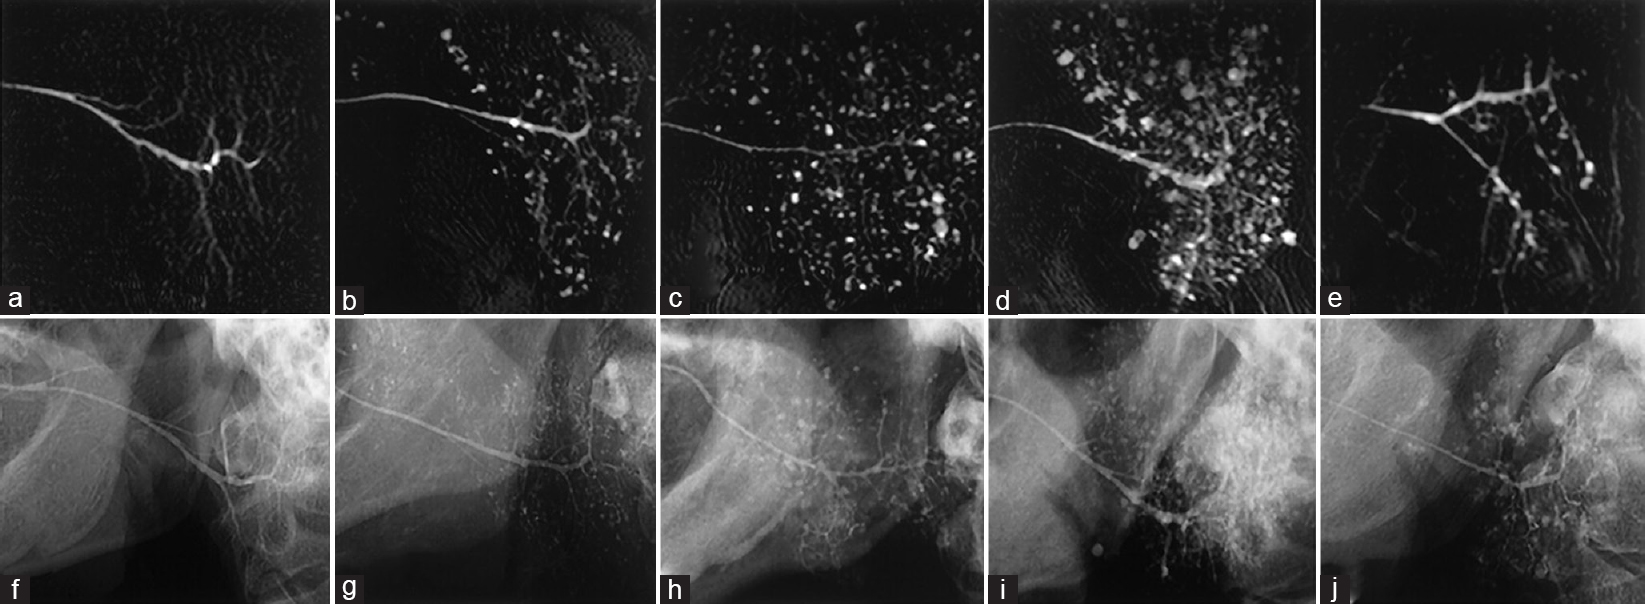 Figure 6: (a–j) MR sialograms (a–e) and conventional sialograms (f–j) of the parotid glands in patients with xerostomia with or without Sjögren's syndrome: grade 0 (a and f), grade 1 (b and g), grade 2 (c and h), grade 3 (d and i), and grade 4 (e and j). Note apparent differences in sialographic features at grade 4 (e vs. j) <sup>[31]</sup>.